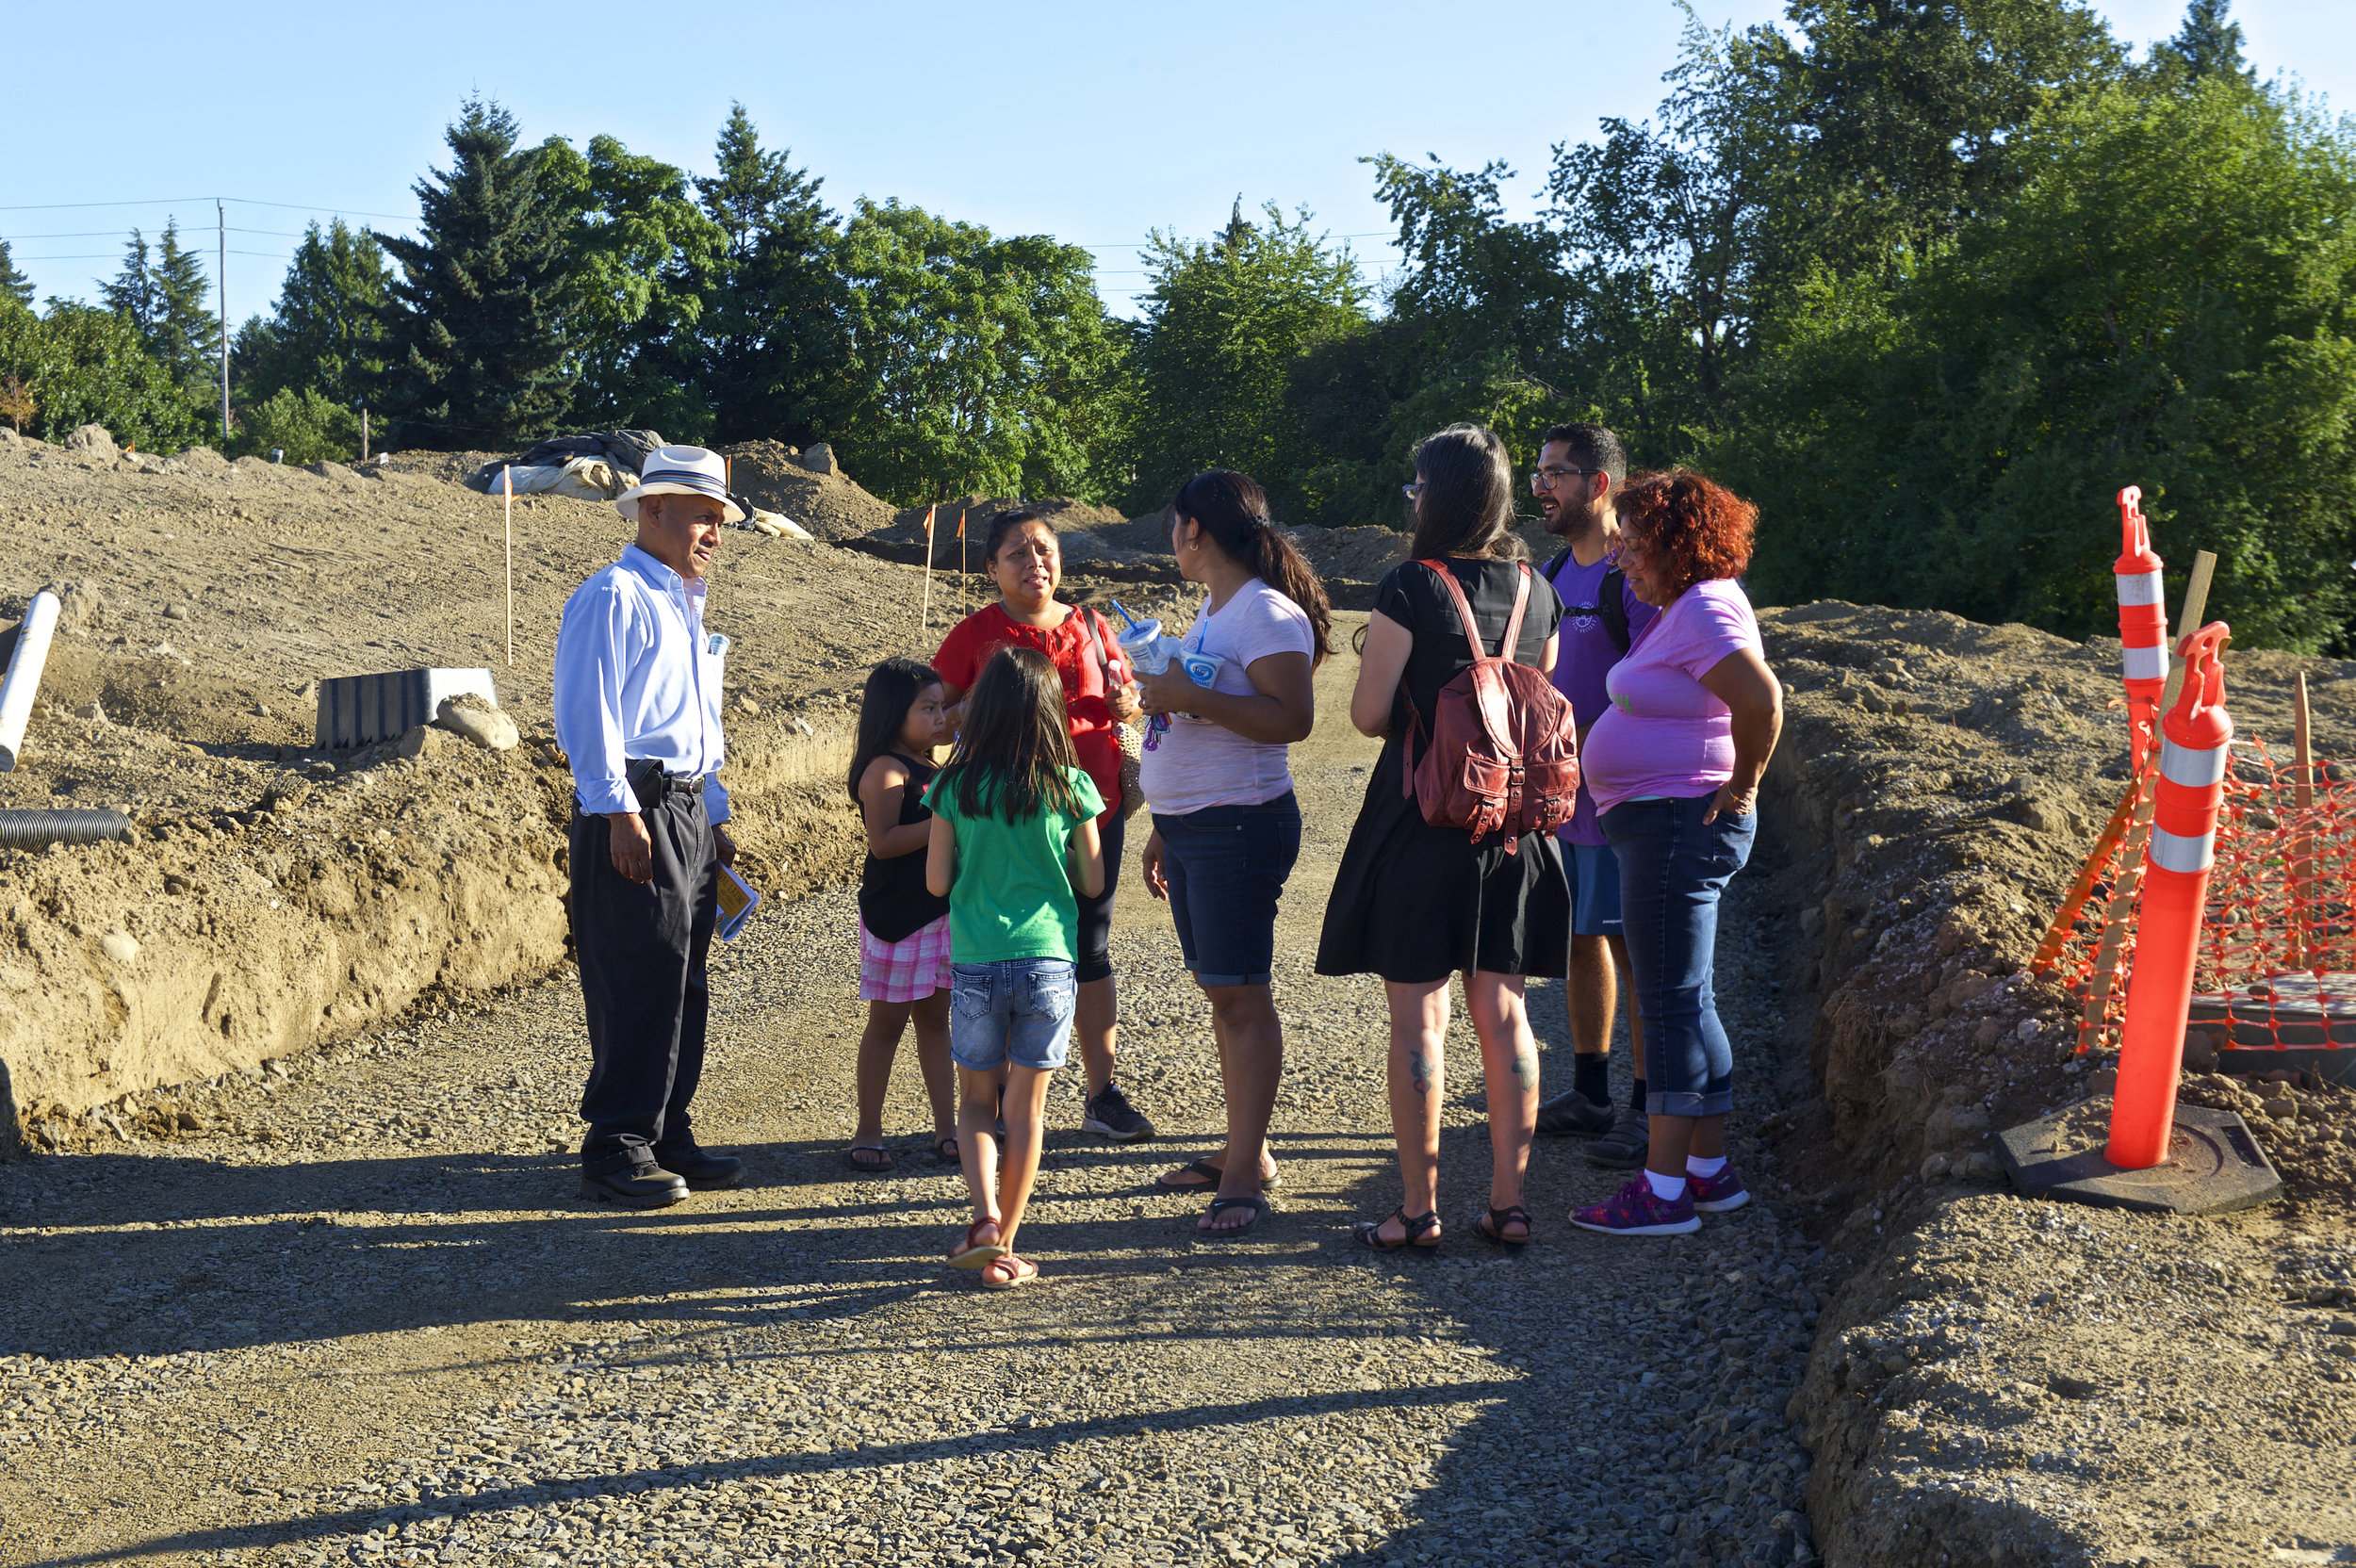 Verde staff member Pedro Moreno leads a community tour of Cully Park in the summer of 2017. Naim Hasan Photography.